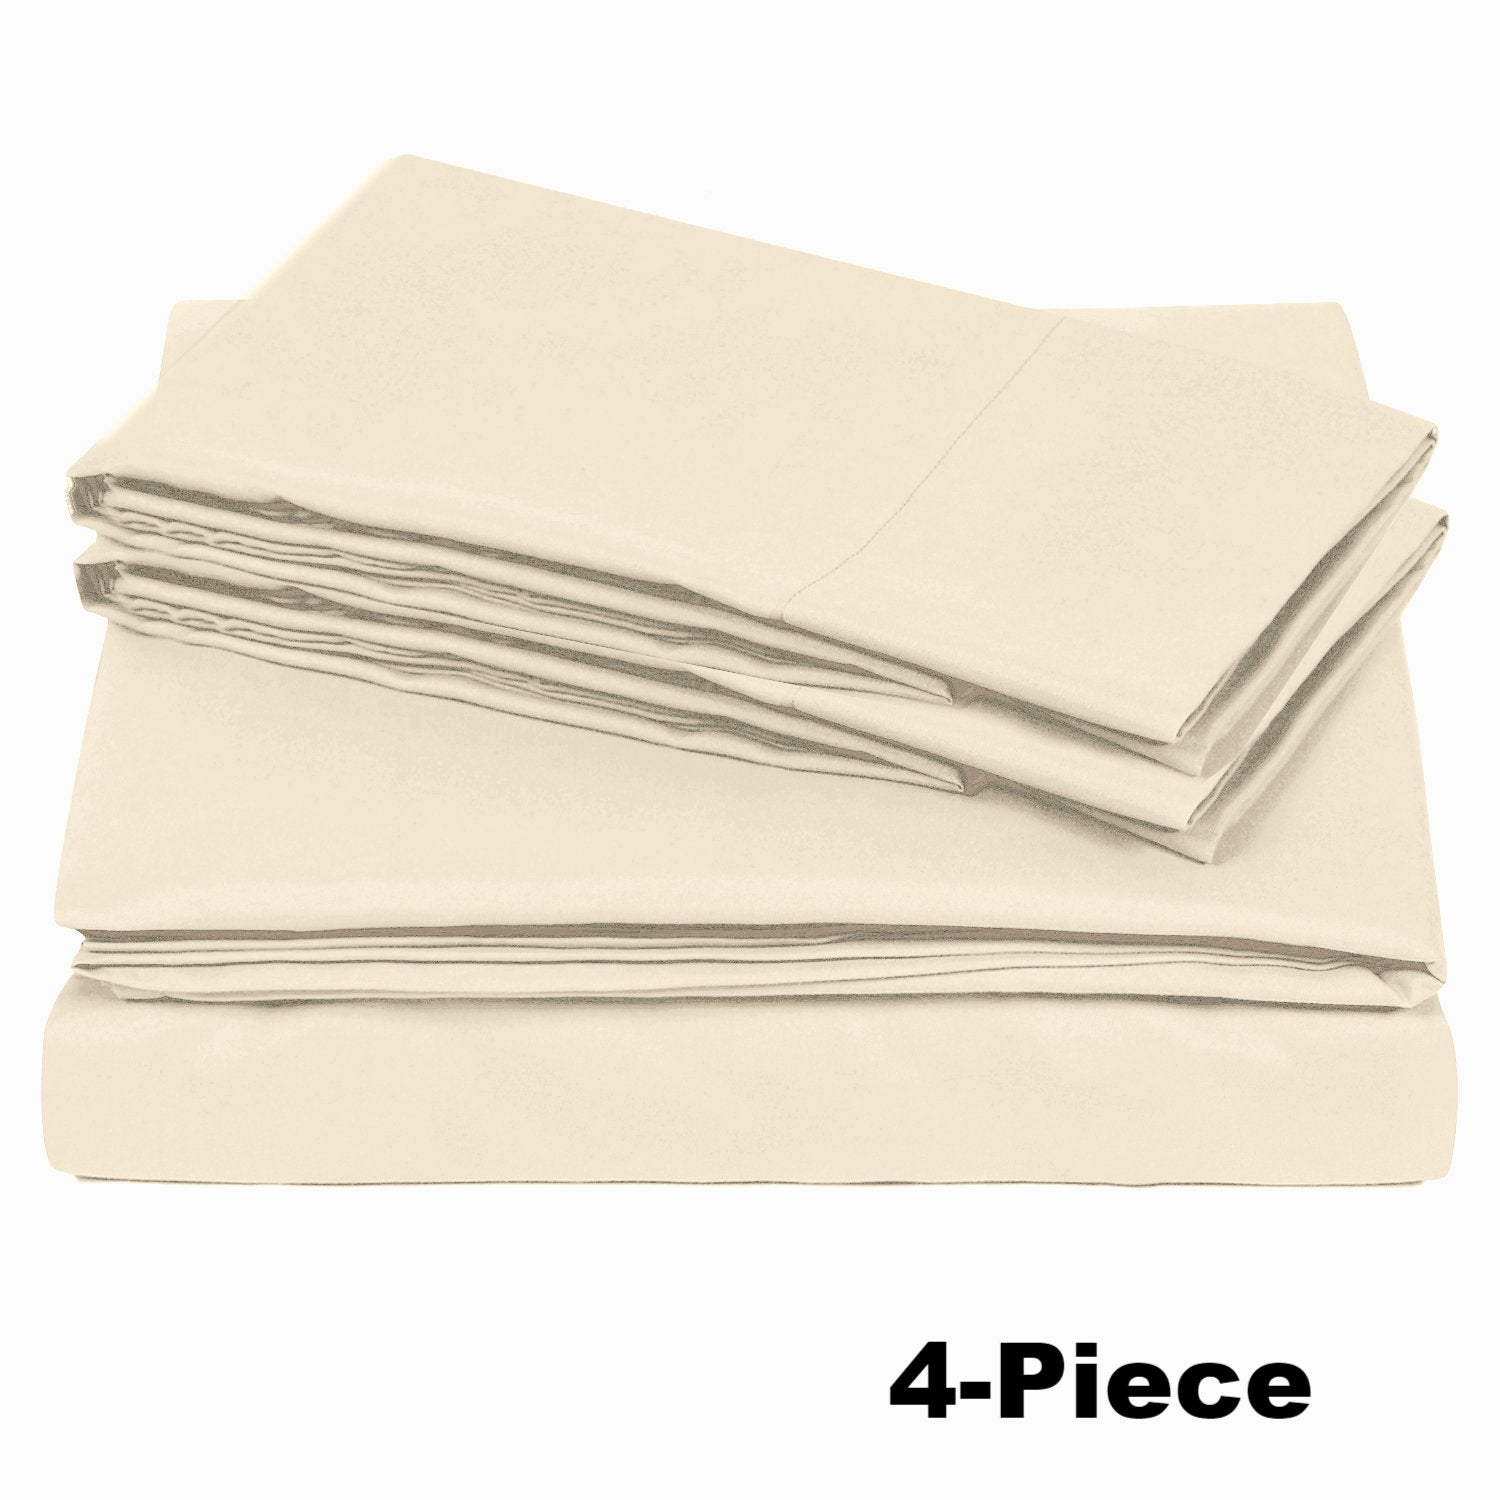 Soft Microfiber Twin Bed Sheets 3-Piece Set - Beige